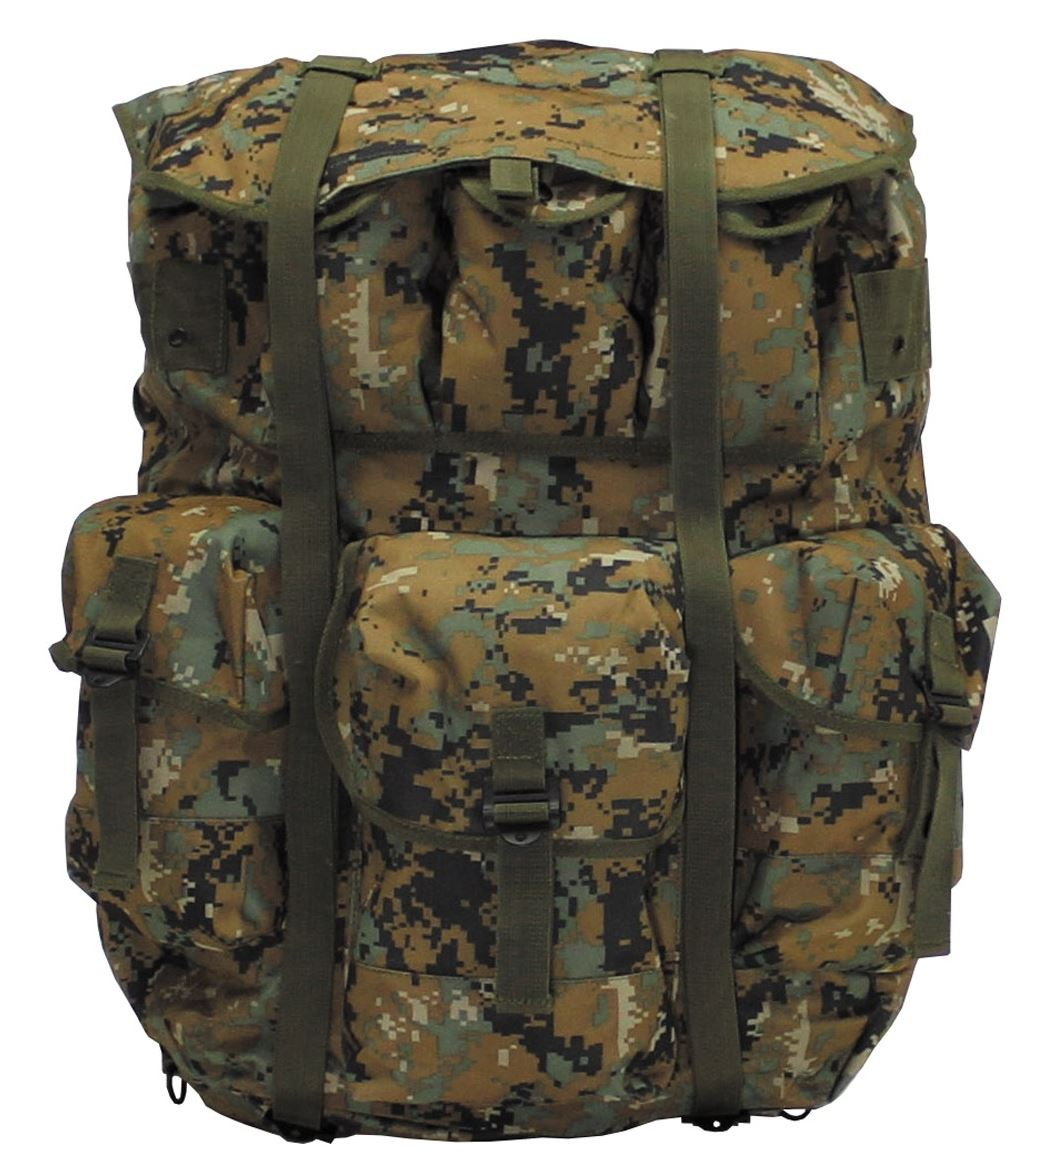 American military surplus large sized ALICE backpack MARPAT BRAND NEW